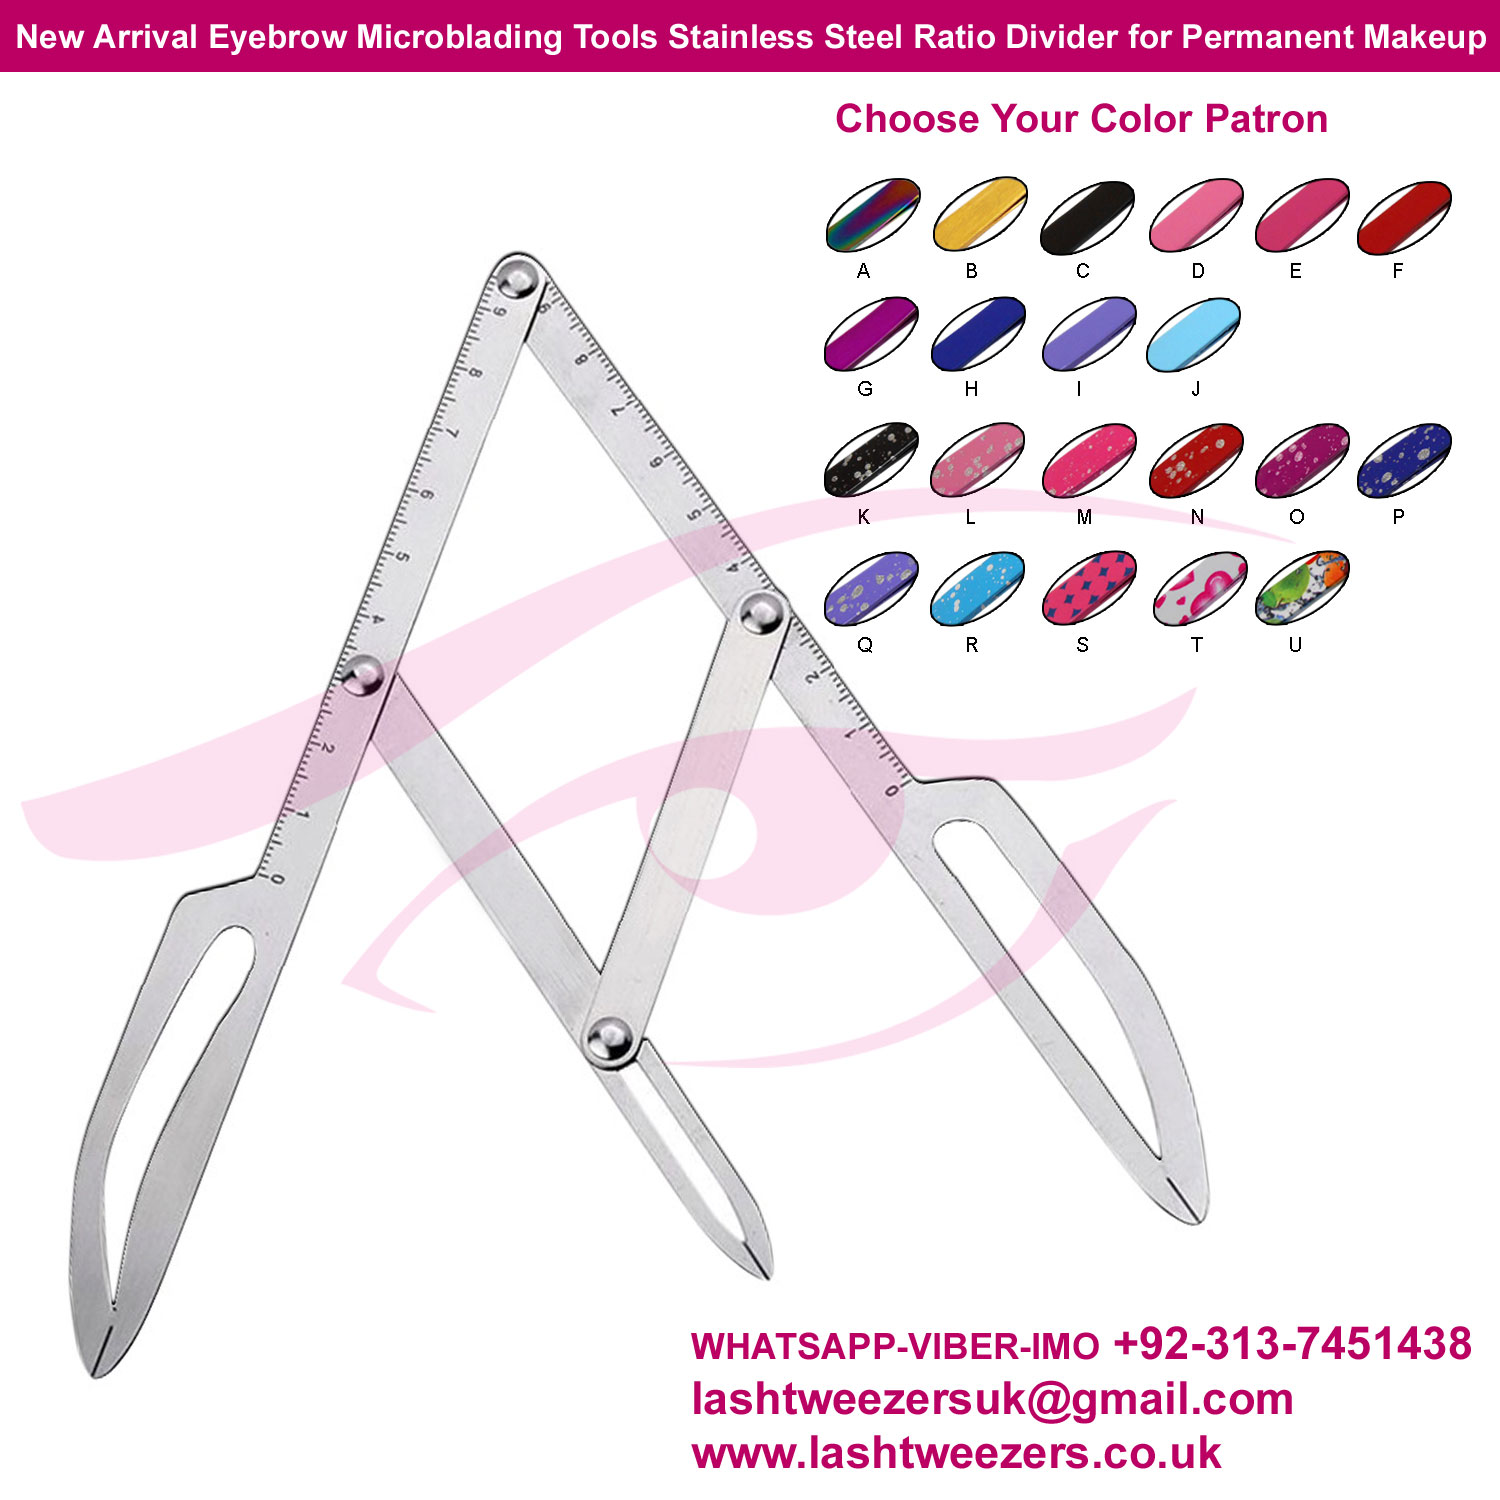 New Arrival Eyebrow Microblading Tools Stainless Steel Ratio Divider for Permanent Makeup